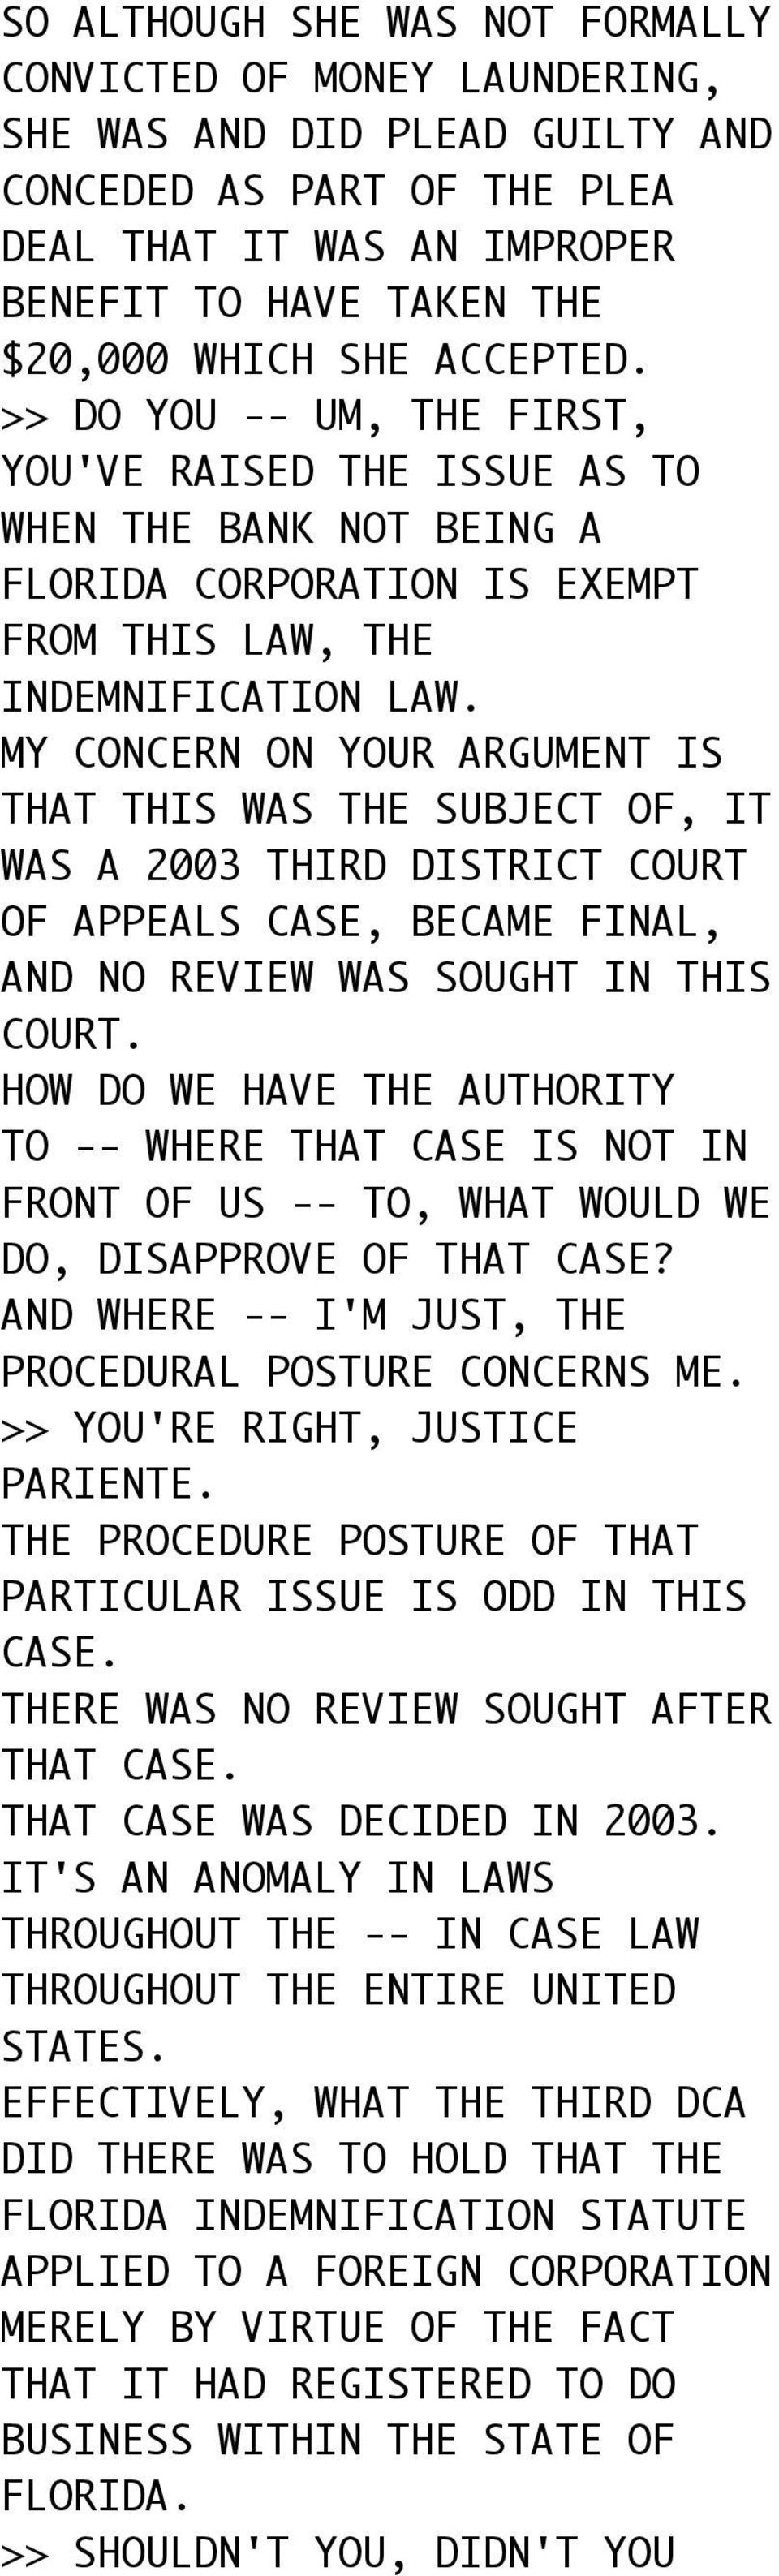 MY CONCERN ON YOUR ARGUMENT IS THAT THIS WAS THE SUBJECT OF, IT WAS A 2003 THIRD DISTRICT COURT OF APPEALS CASE, BECAME FINAL, AND NO REVIEW WAS SOUGHT IN THIS COURT.